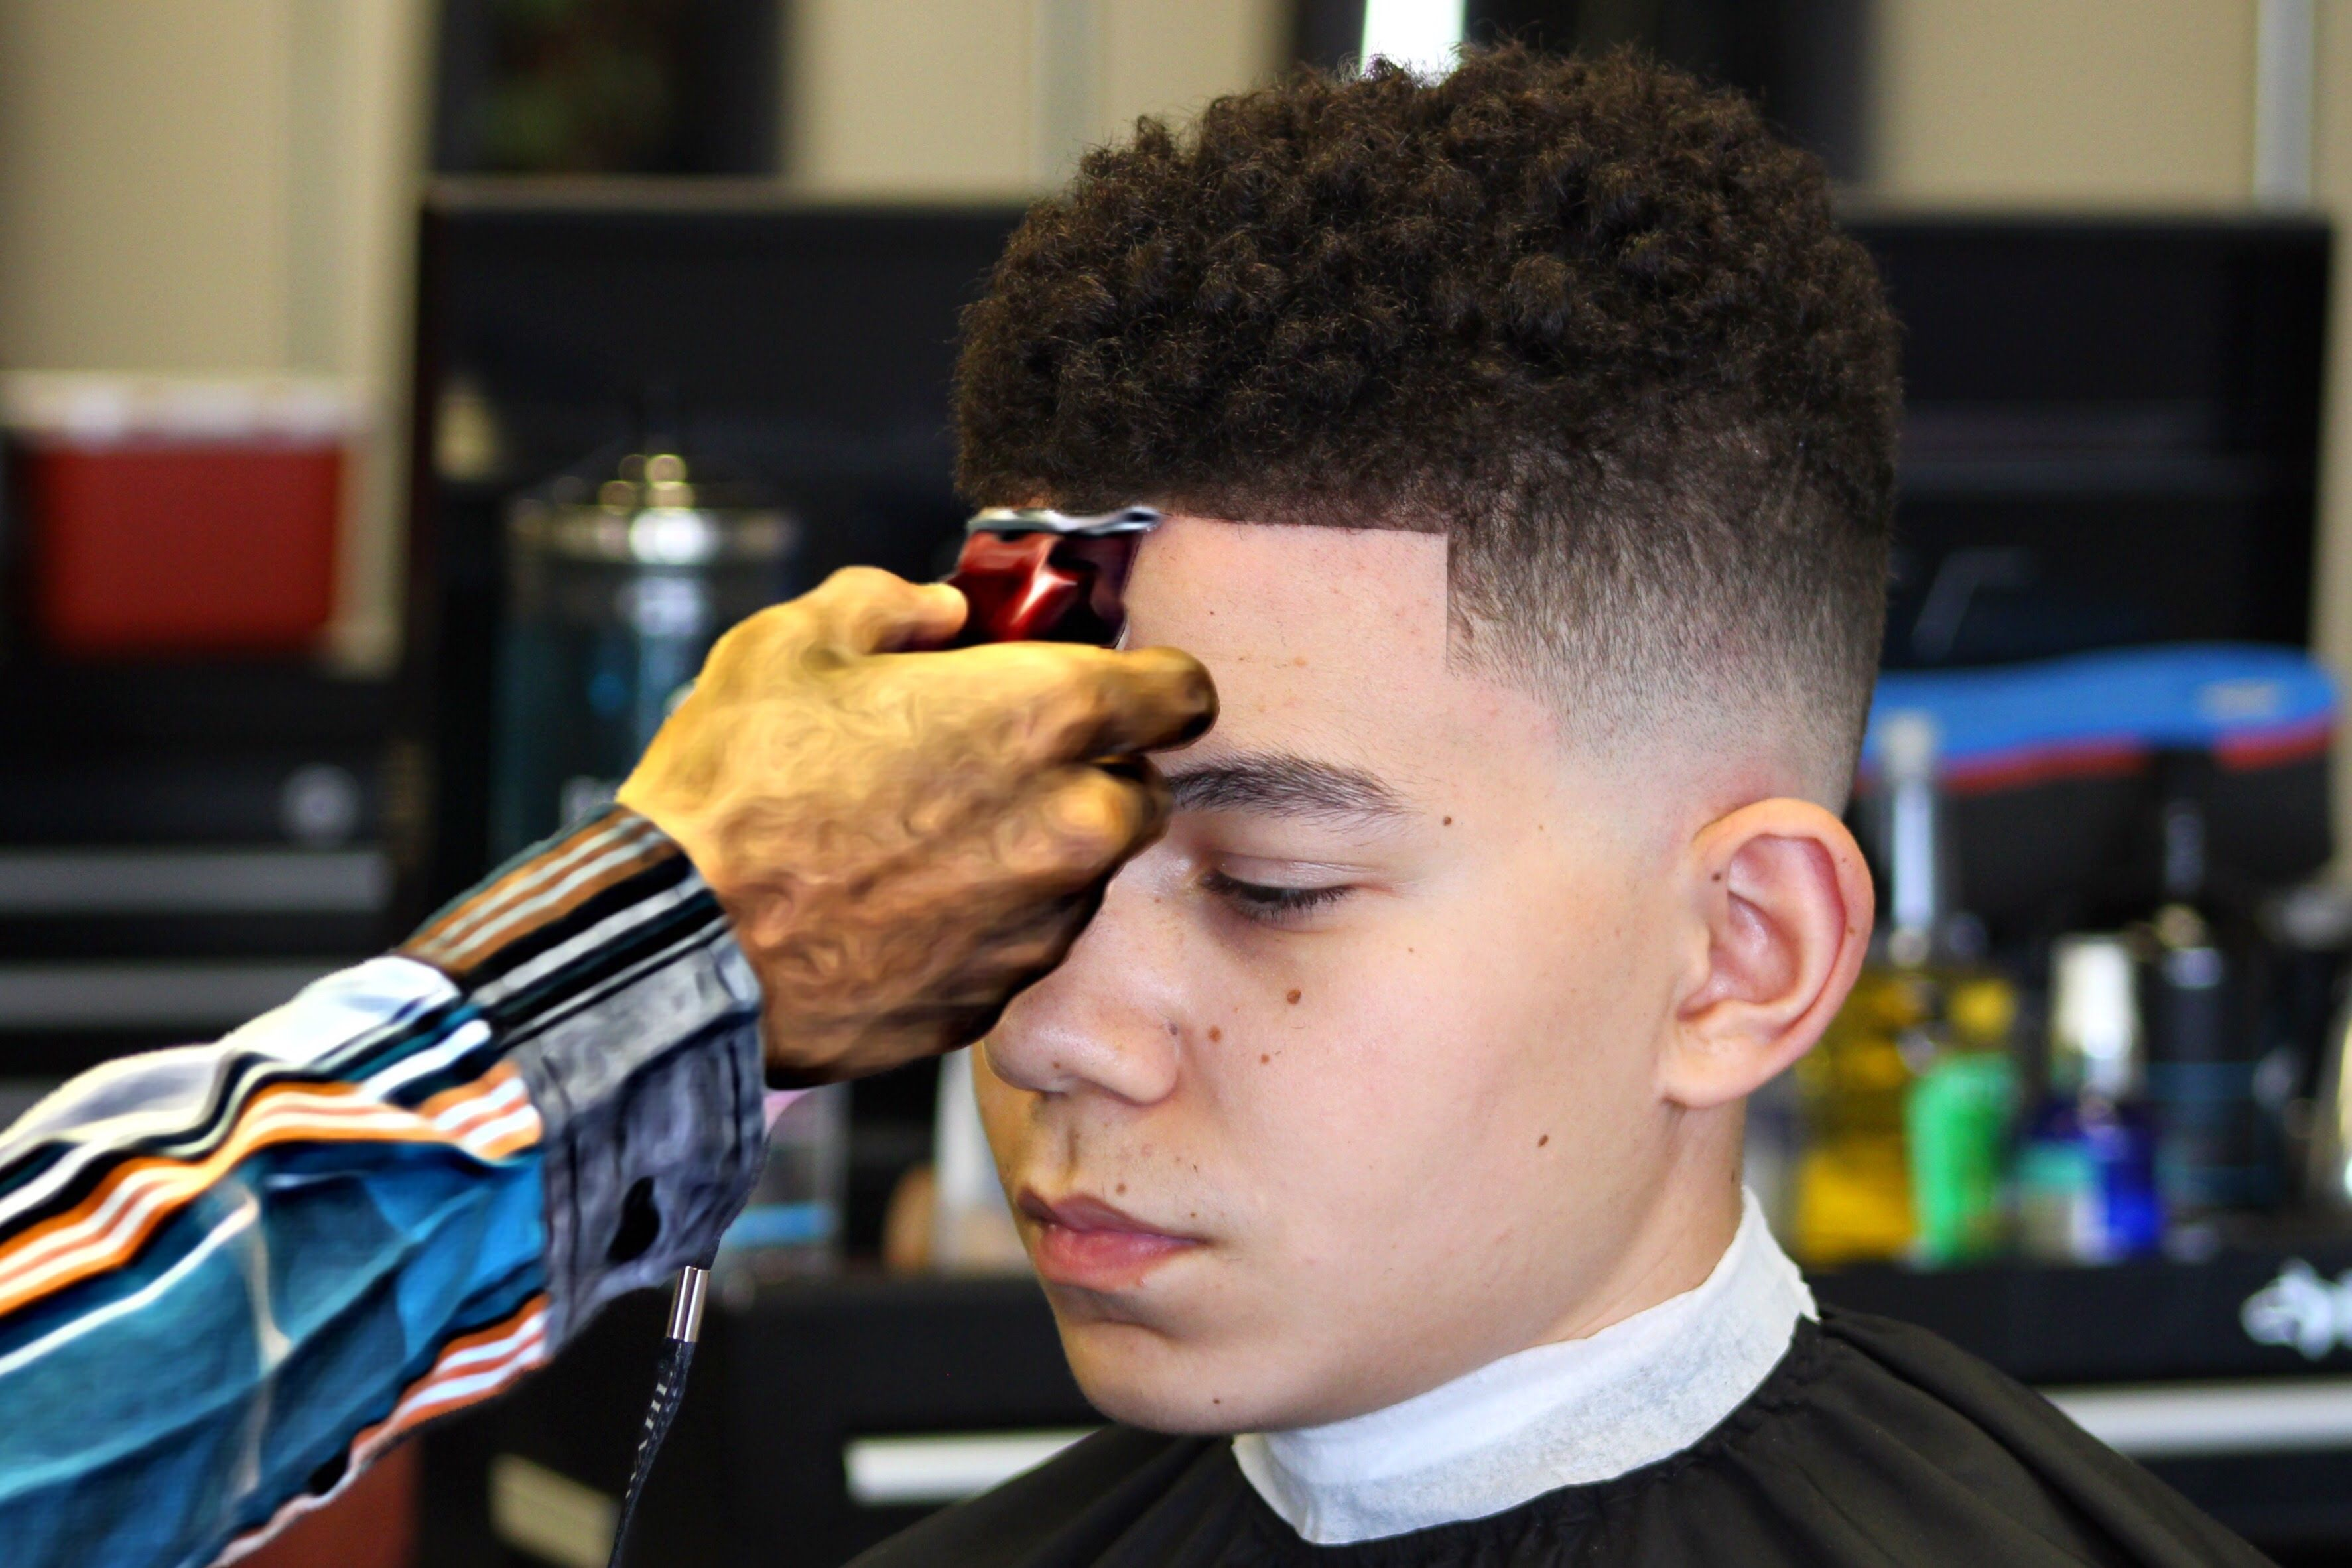 How To Do A Drop Fade Curl Sponge Hd Drop Fade Haircut Black Hair Fade Curl Sponge